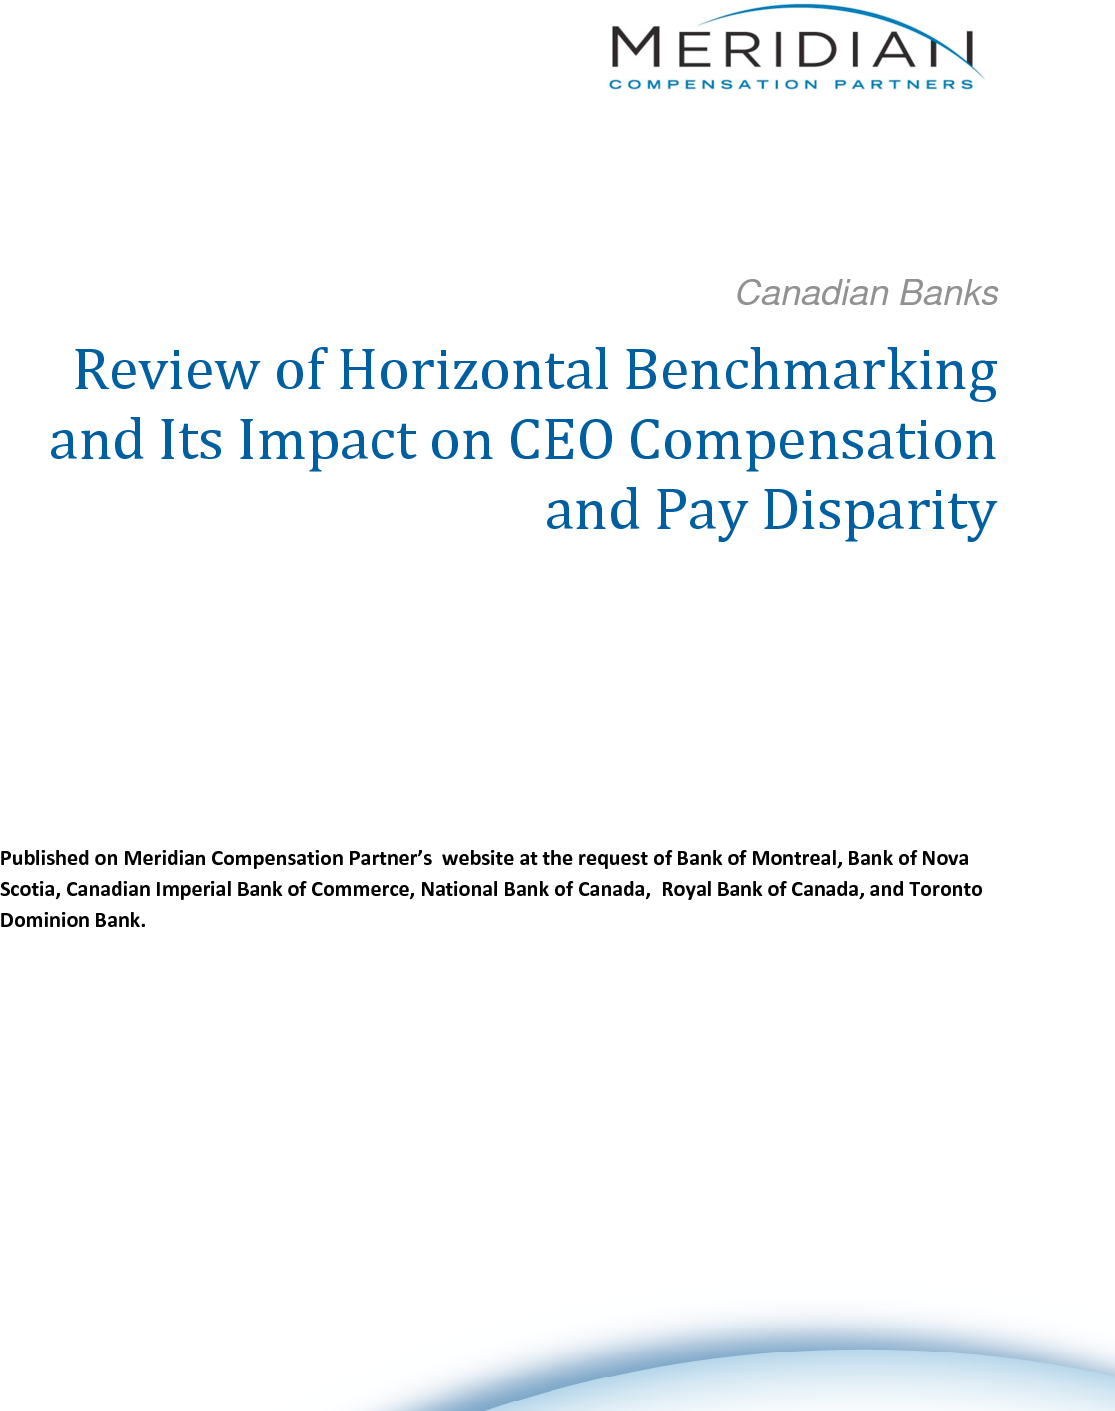 Review of Horizontal Benchmarking and Its Impact on CEO Compensation and Pay Disparity (PDF)